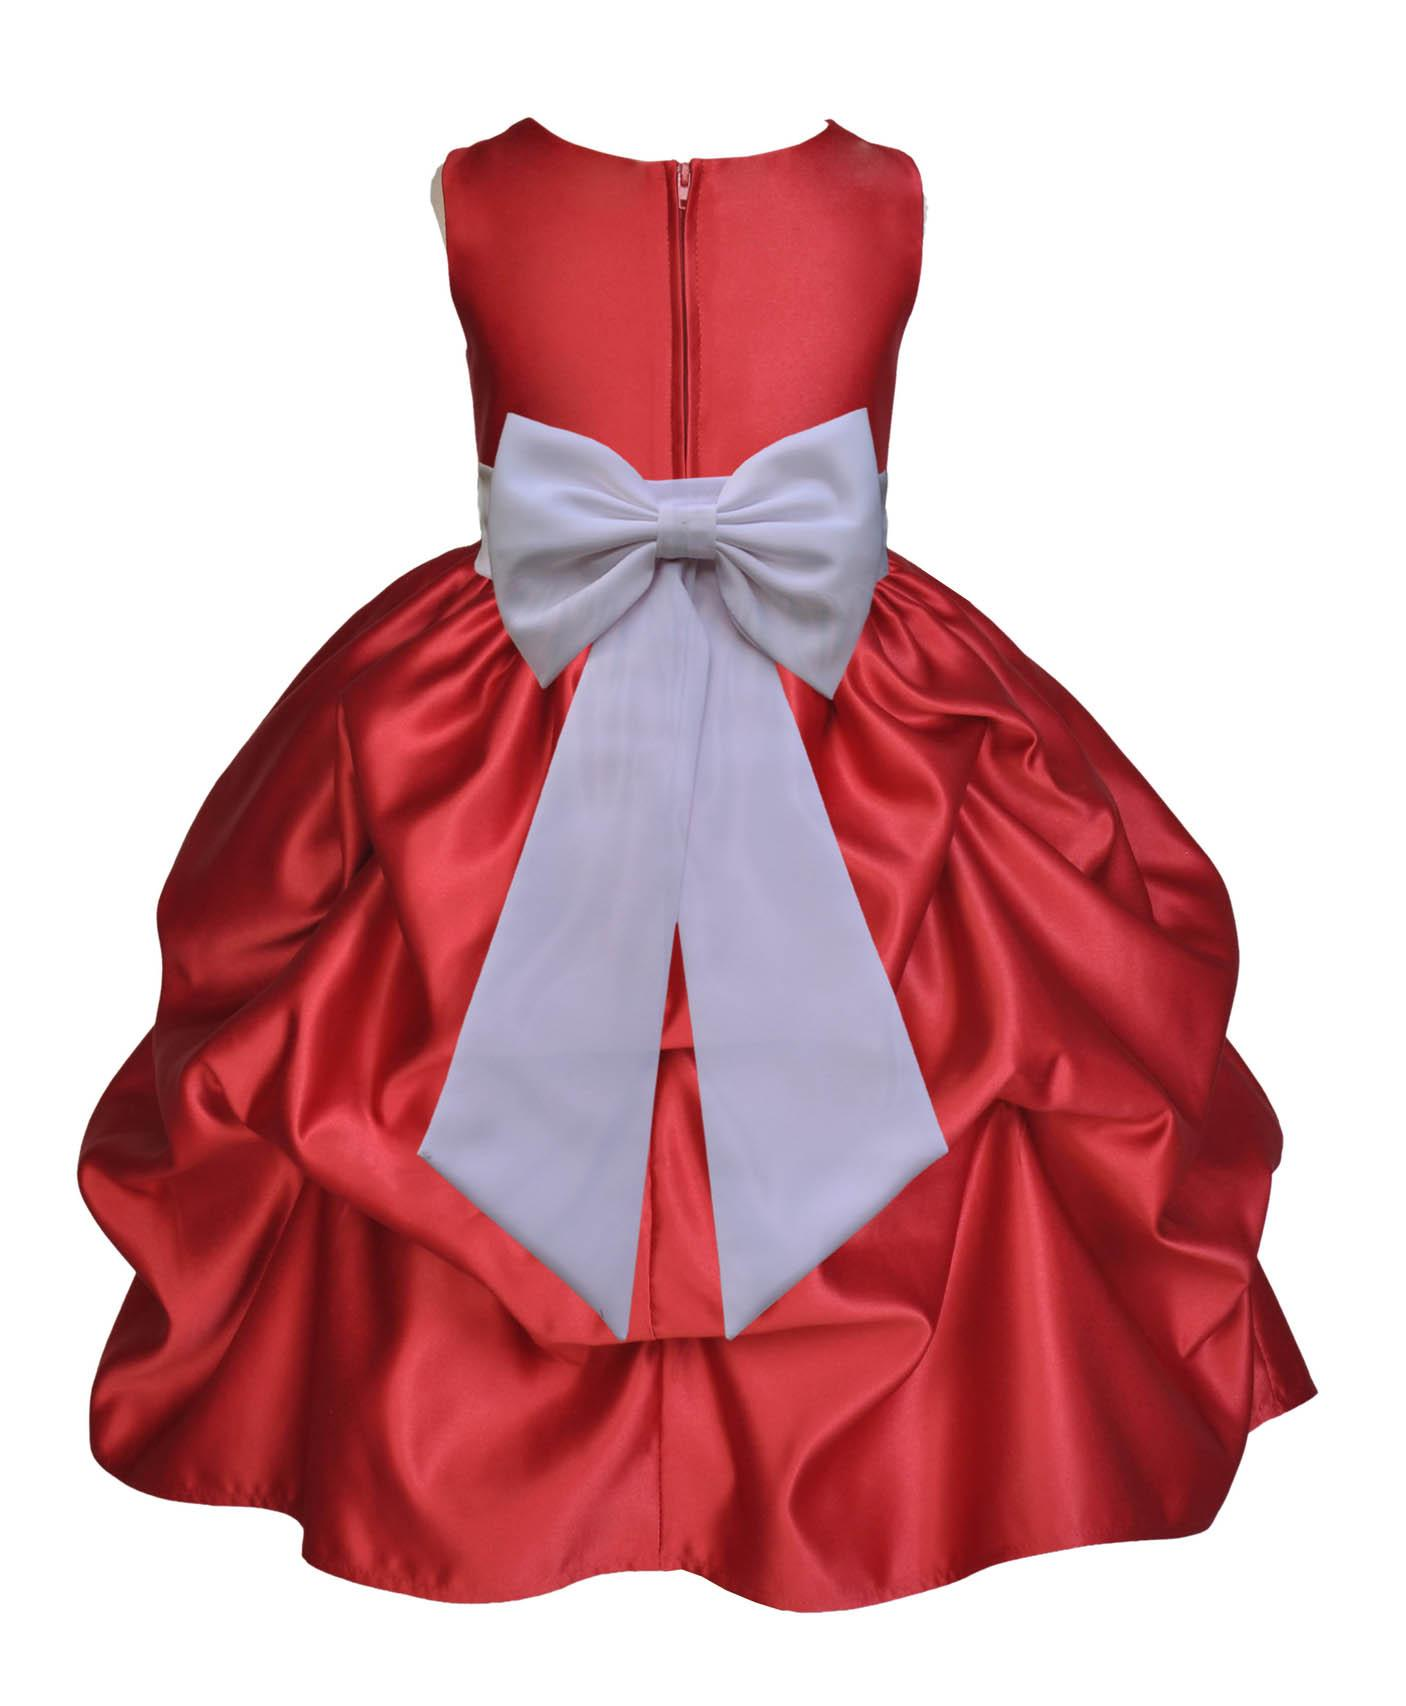 Ekidsbridal Satin Bubble Pick-up Apple Red Flower Girl Dress Christmas Weddings Summer Easter Dress Special Occasions Pageant Toddler Girl's Clothing Holiday Bridal Baptism 208T White size 6